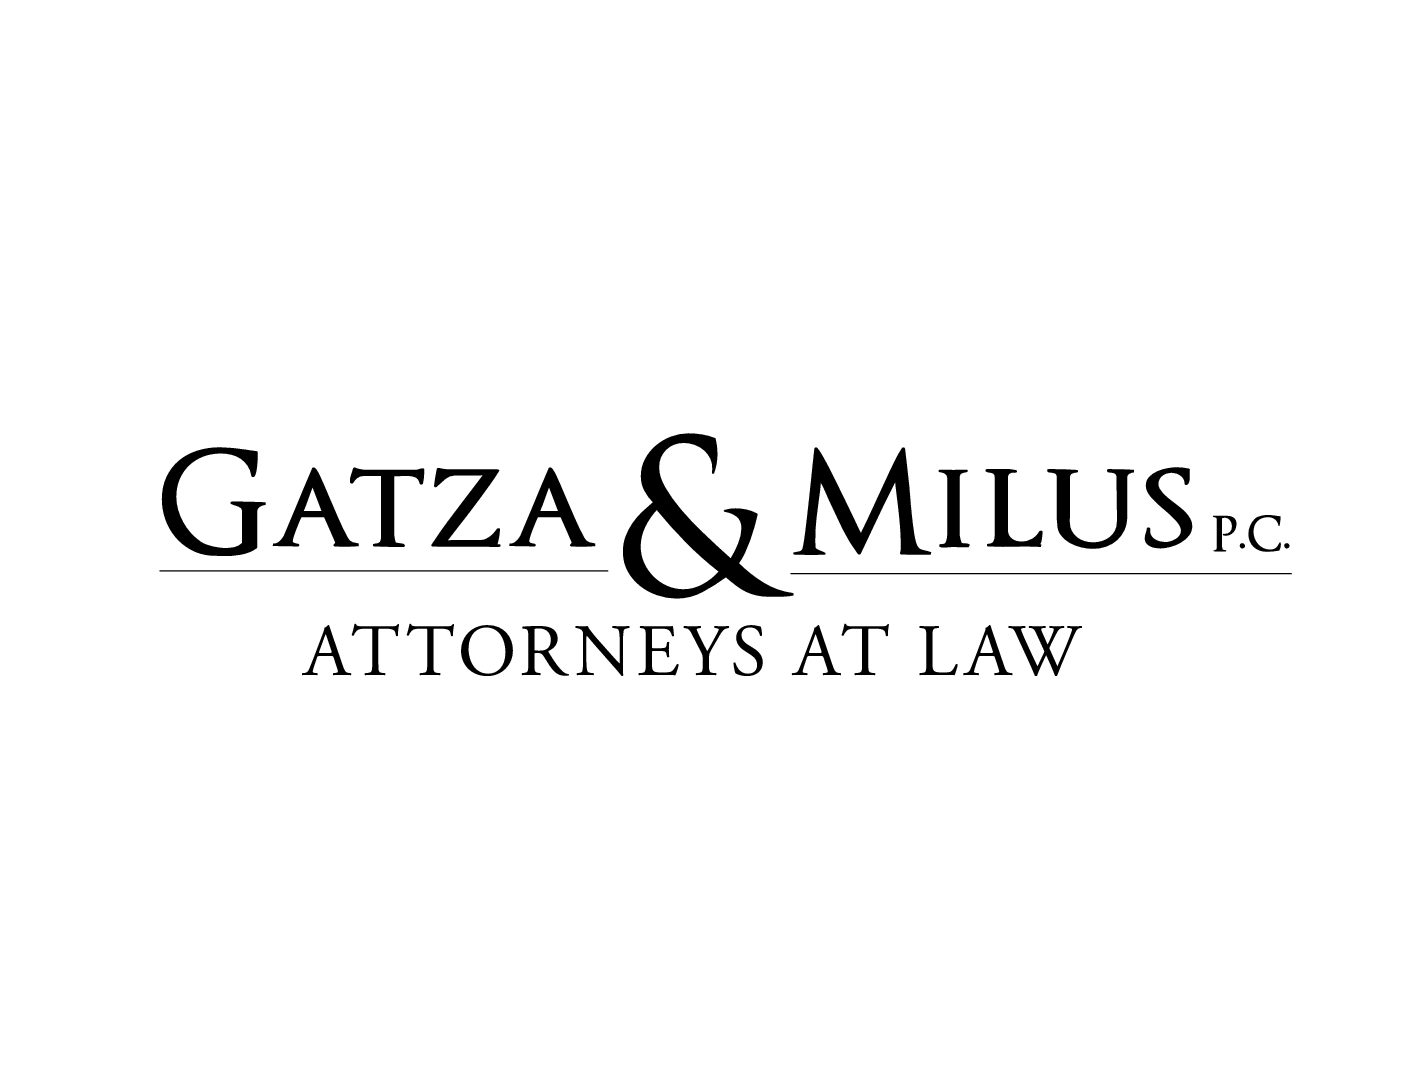 Gatza & Milus, P.C, Attorneys At Law